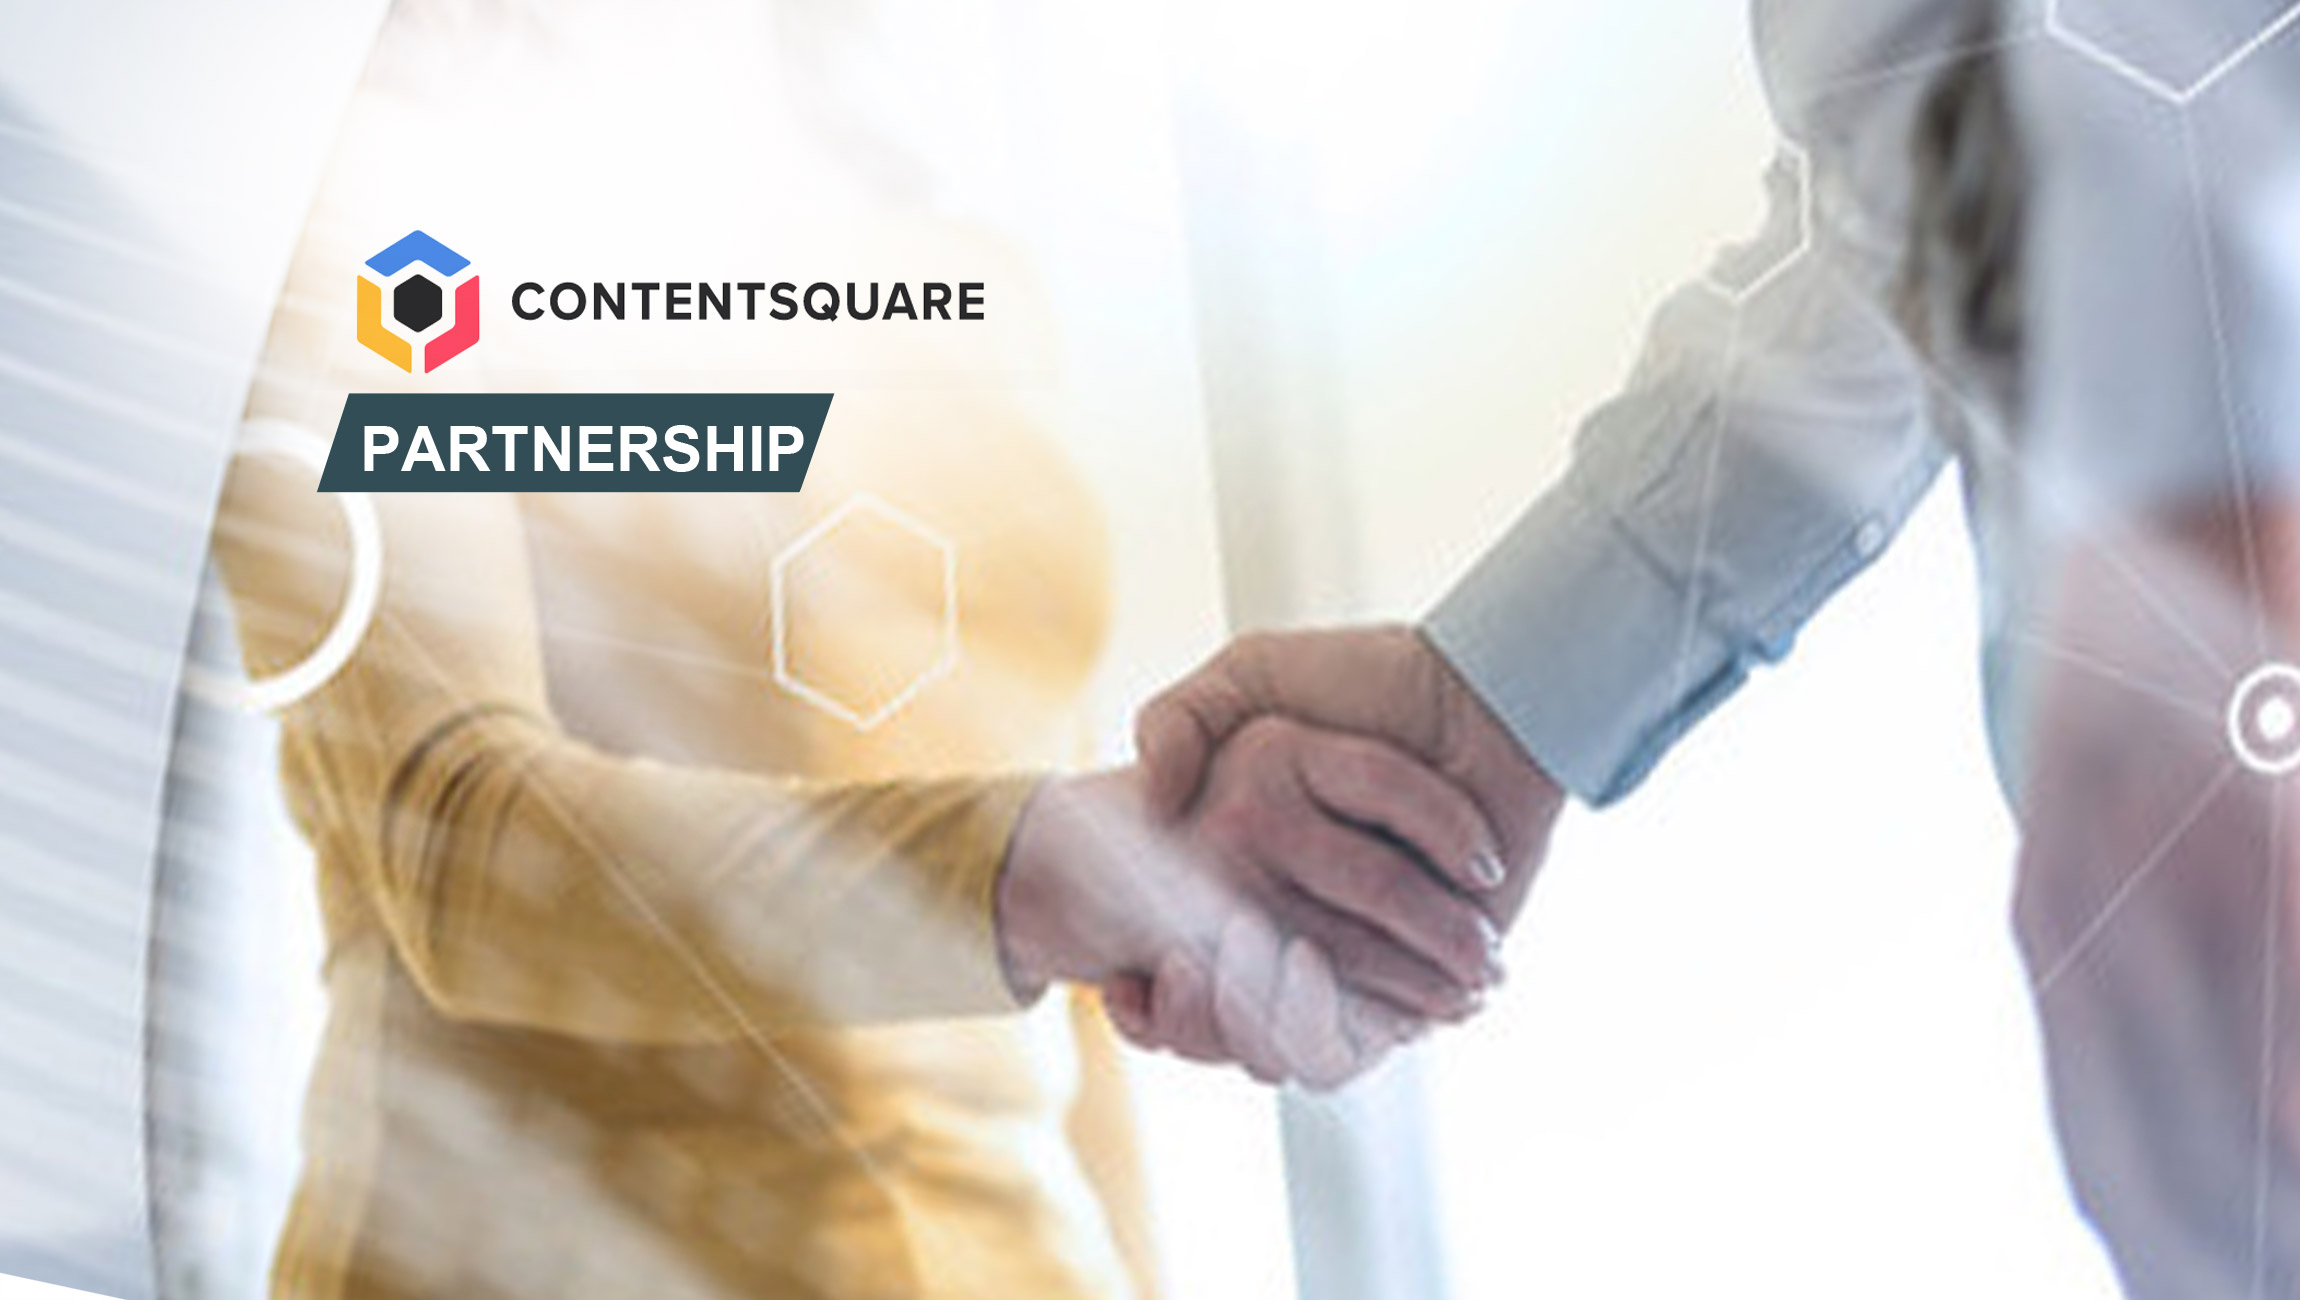 Contentsquare Partners With Leading Pharmaceutical And Biotech Businesses To Help Manage The Accelerated Shift To Digital Healthcare